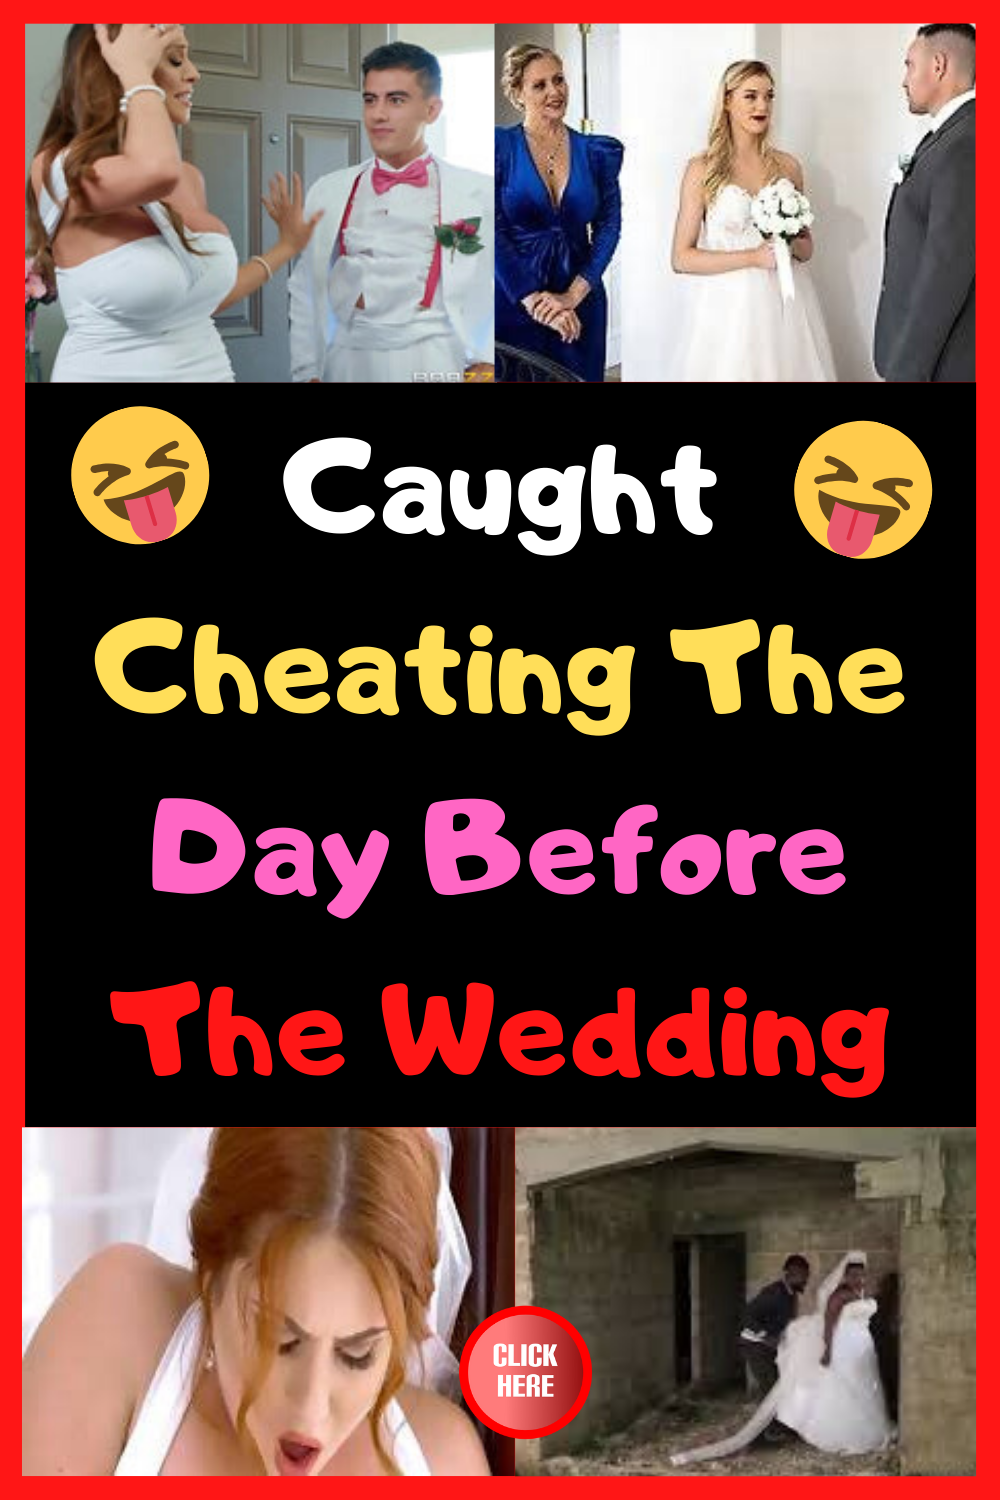 Caught Cheating The Day Before The Wedding In 2020 Caught Cheating Celebrities Cheating